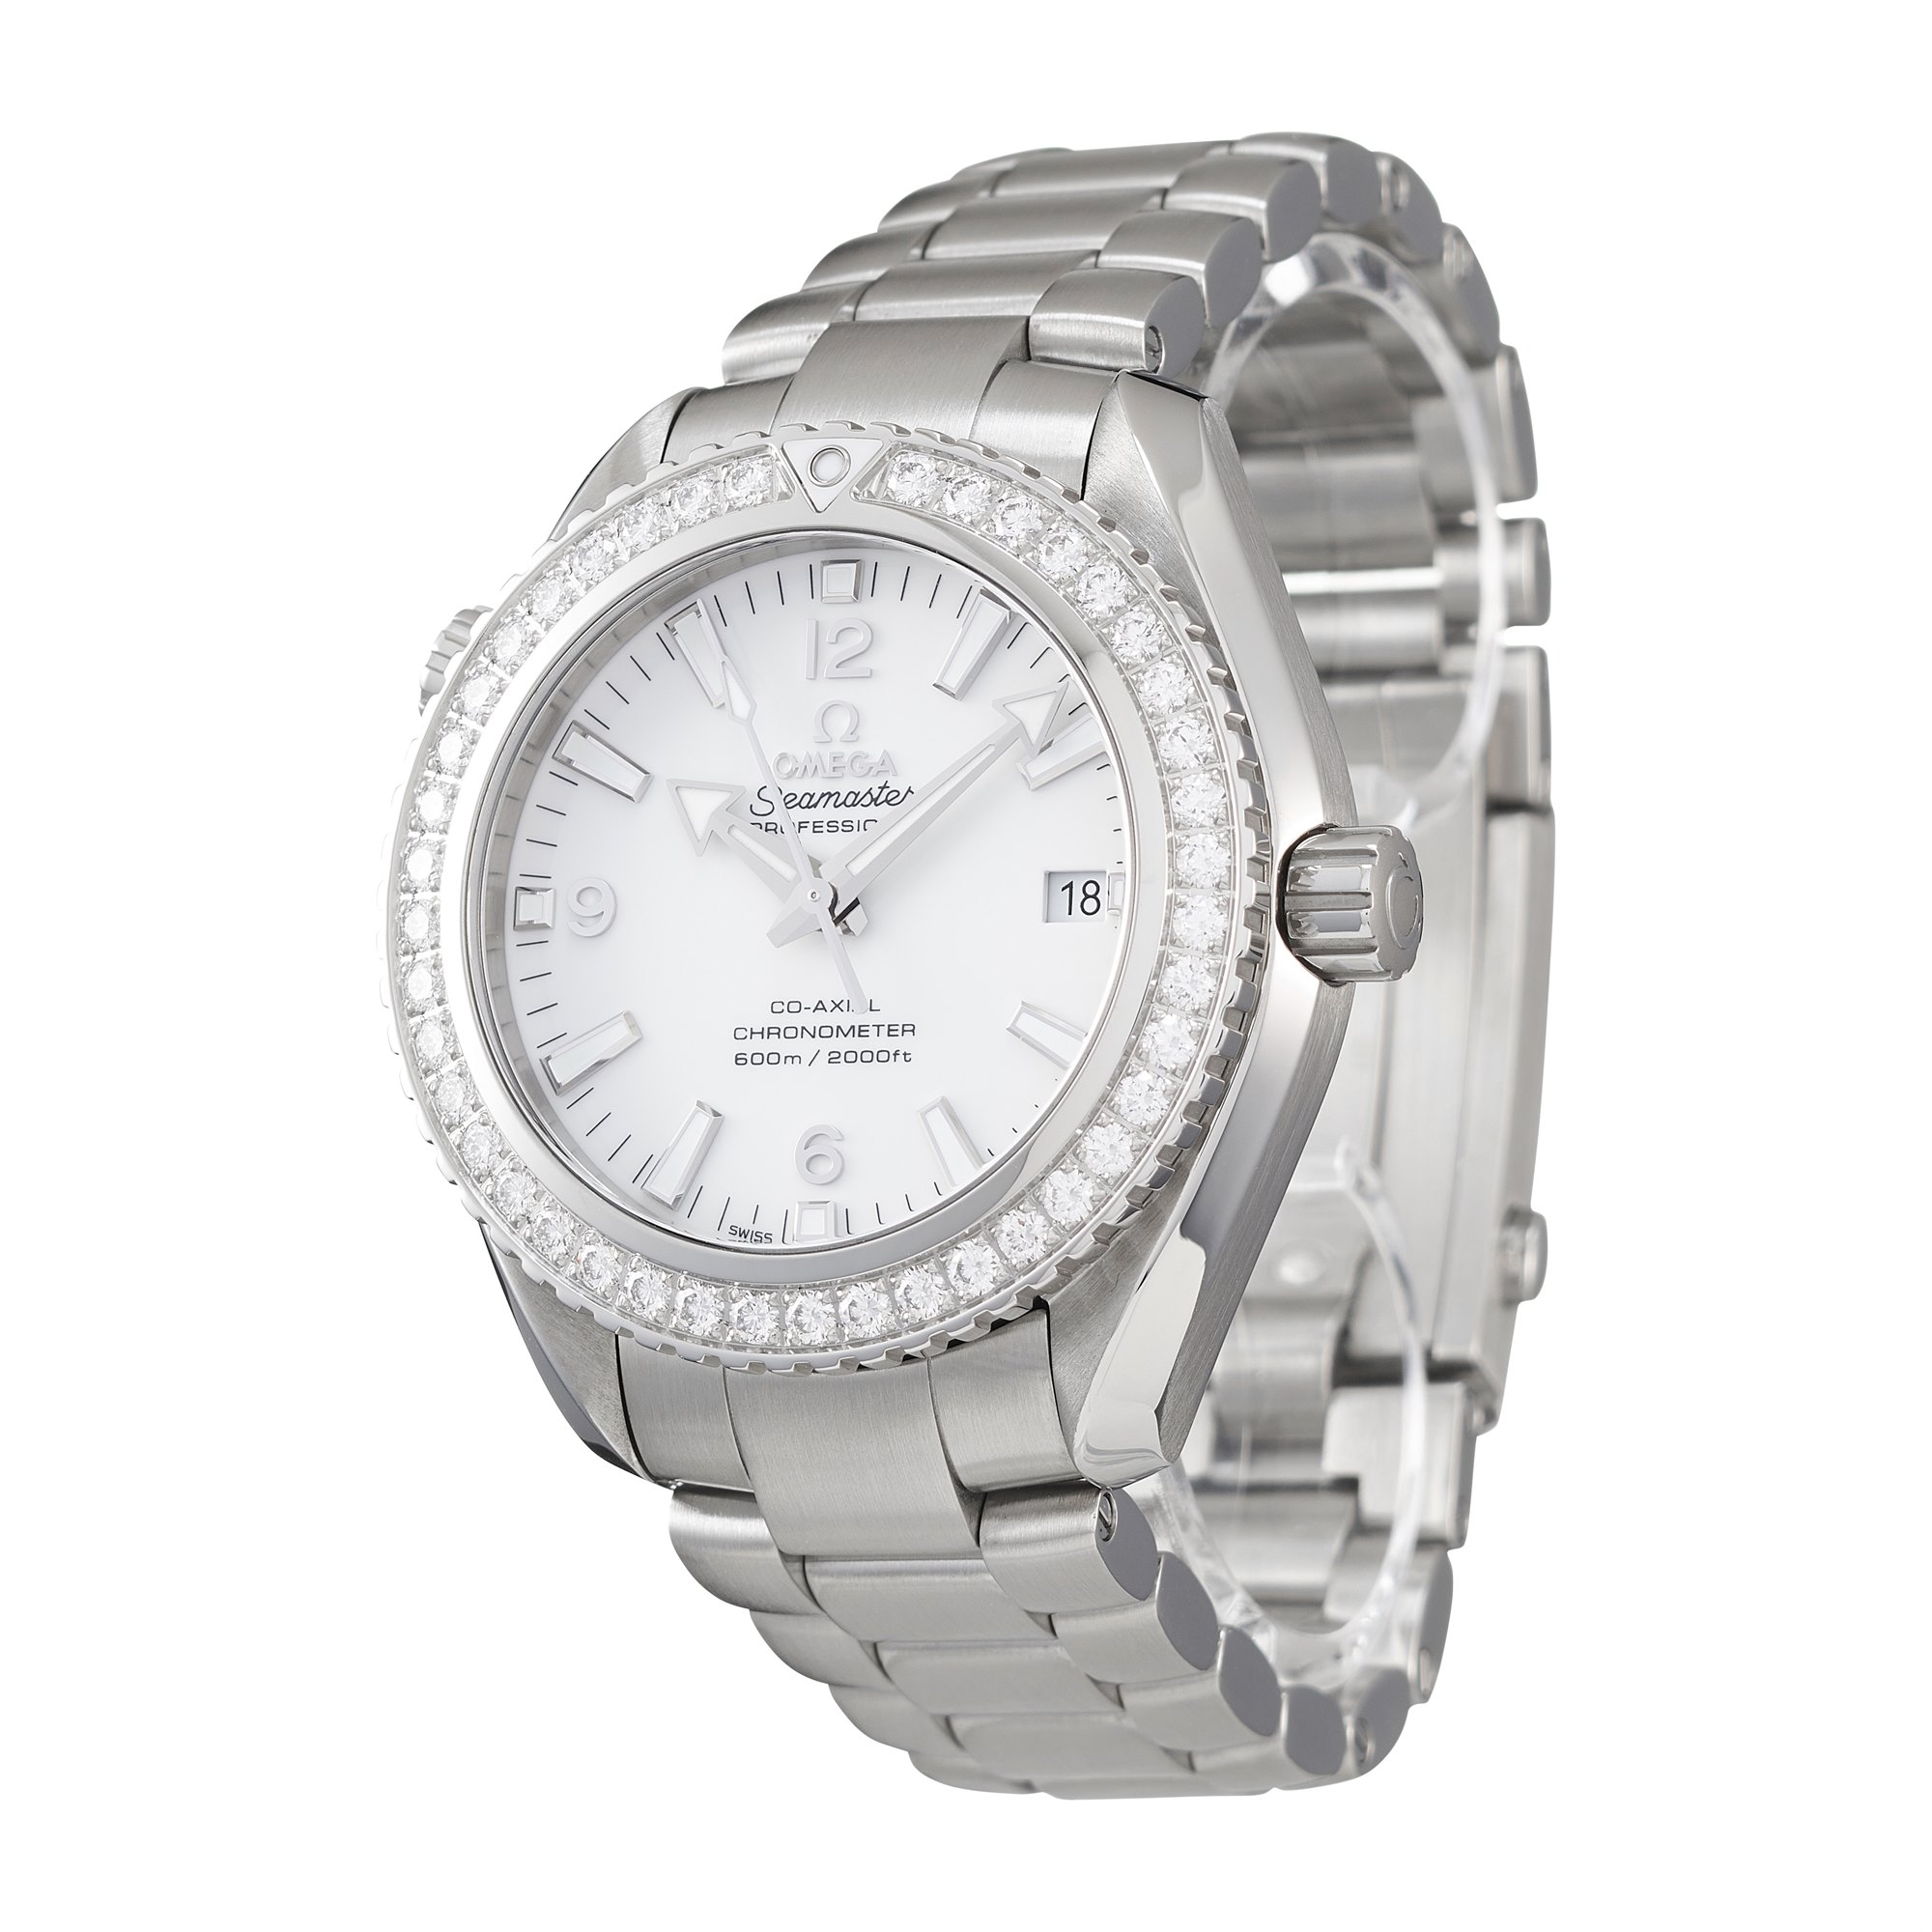 Omega Seamaster Planet Ocean 600M Roestvrij Staal 232.15.42.21.04.001